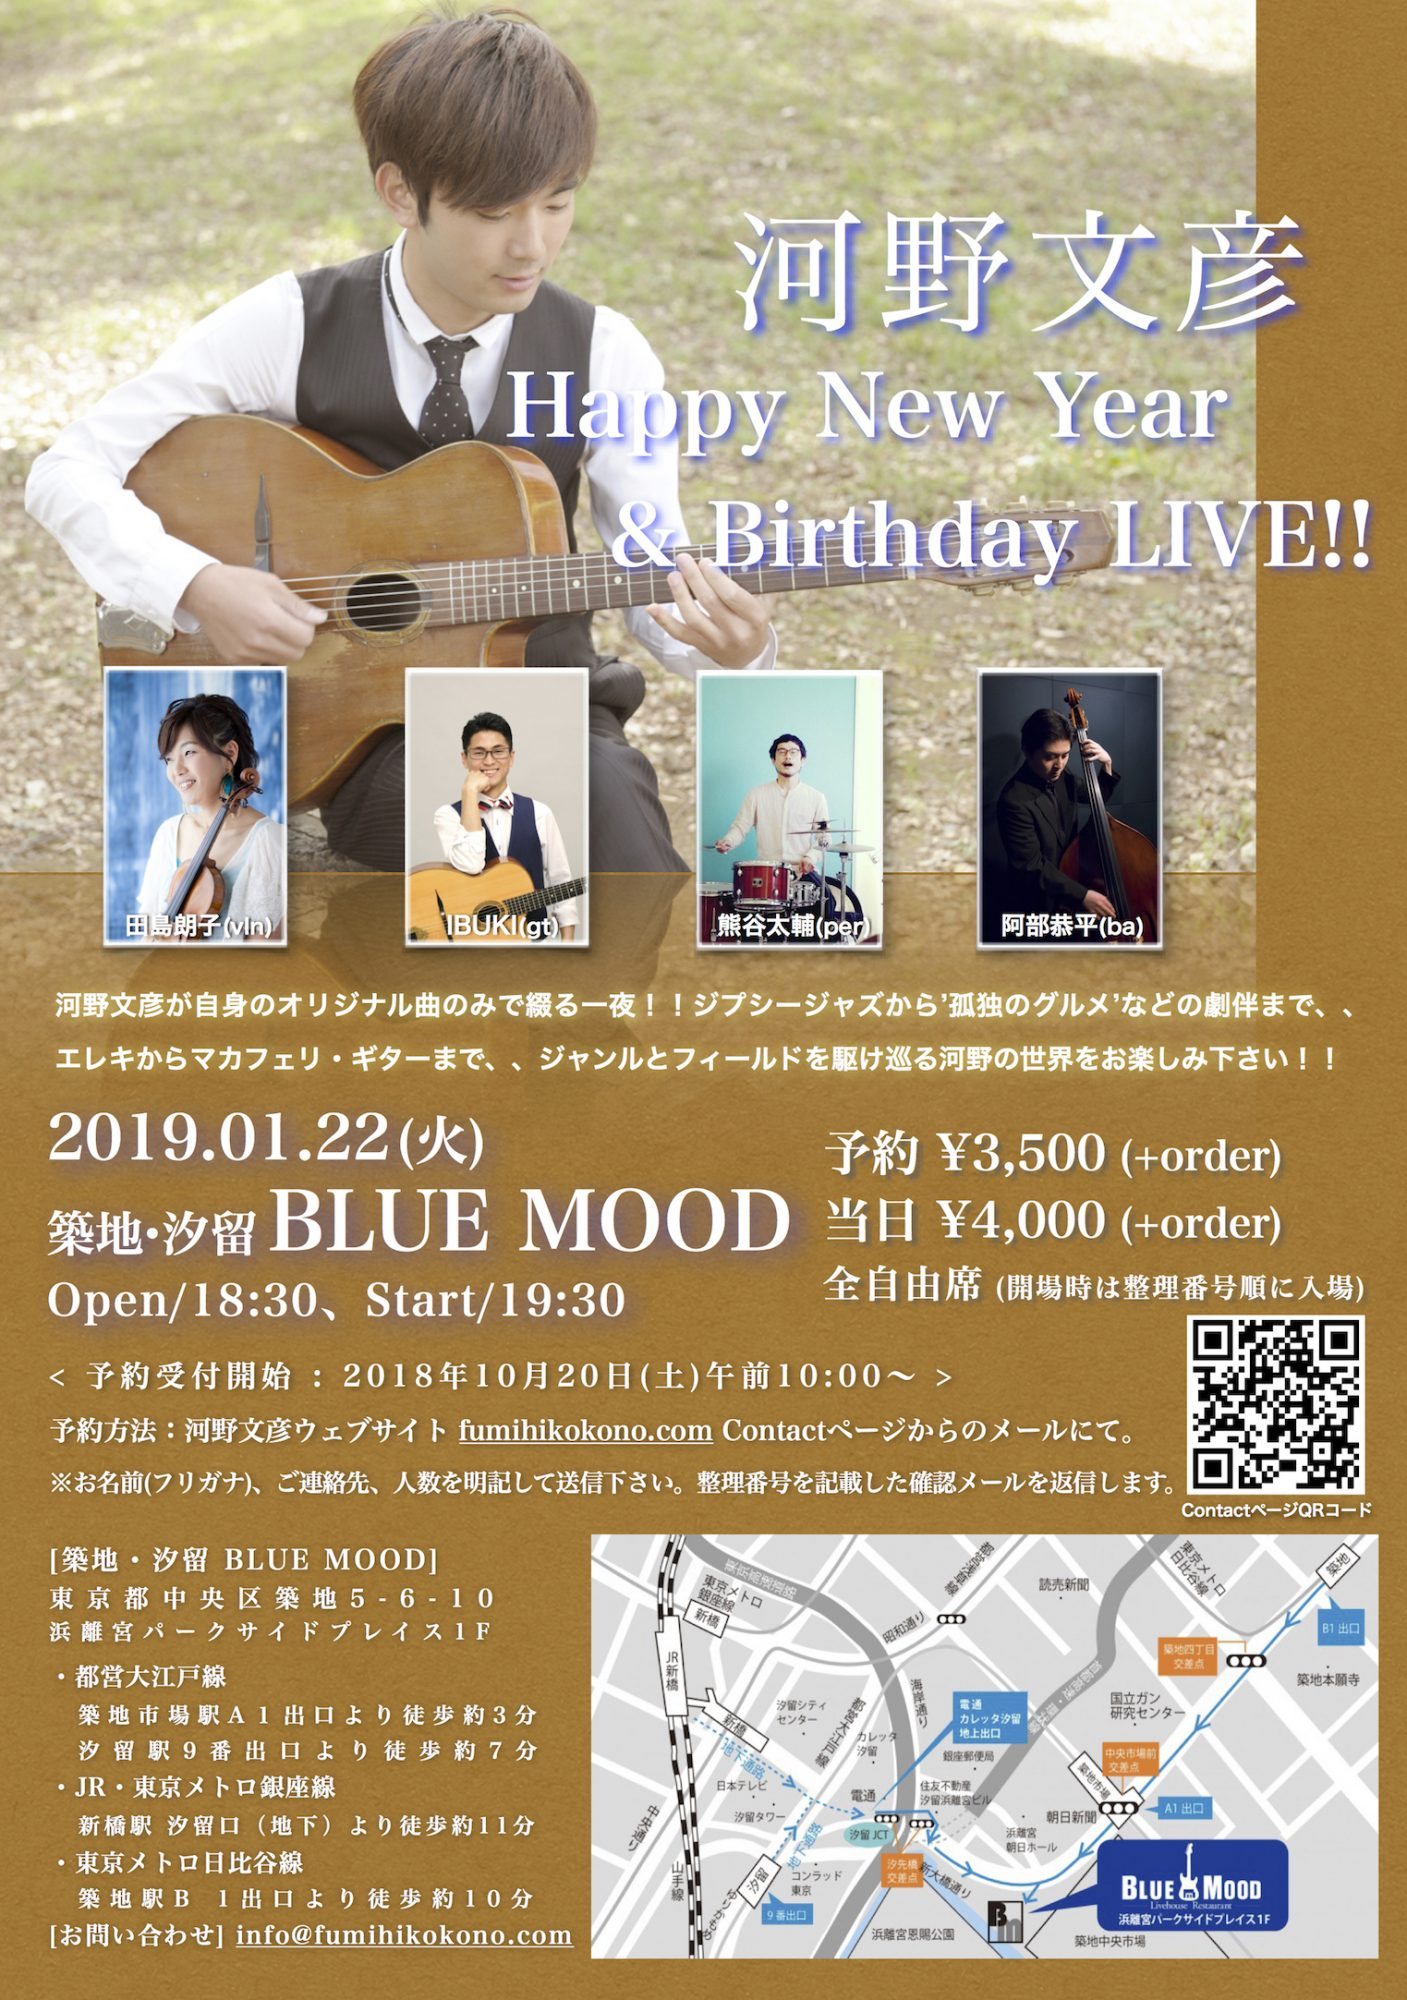 河野文彦 Happy New Year & Birthday LIVE!!